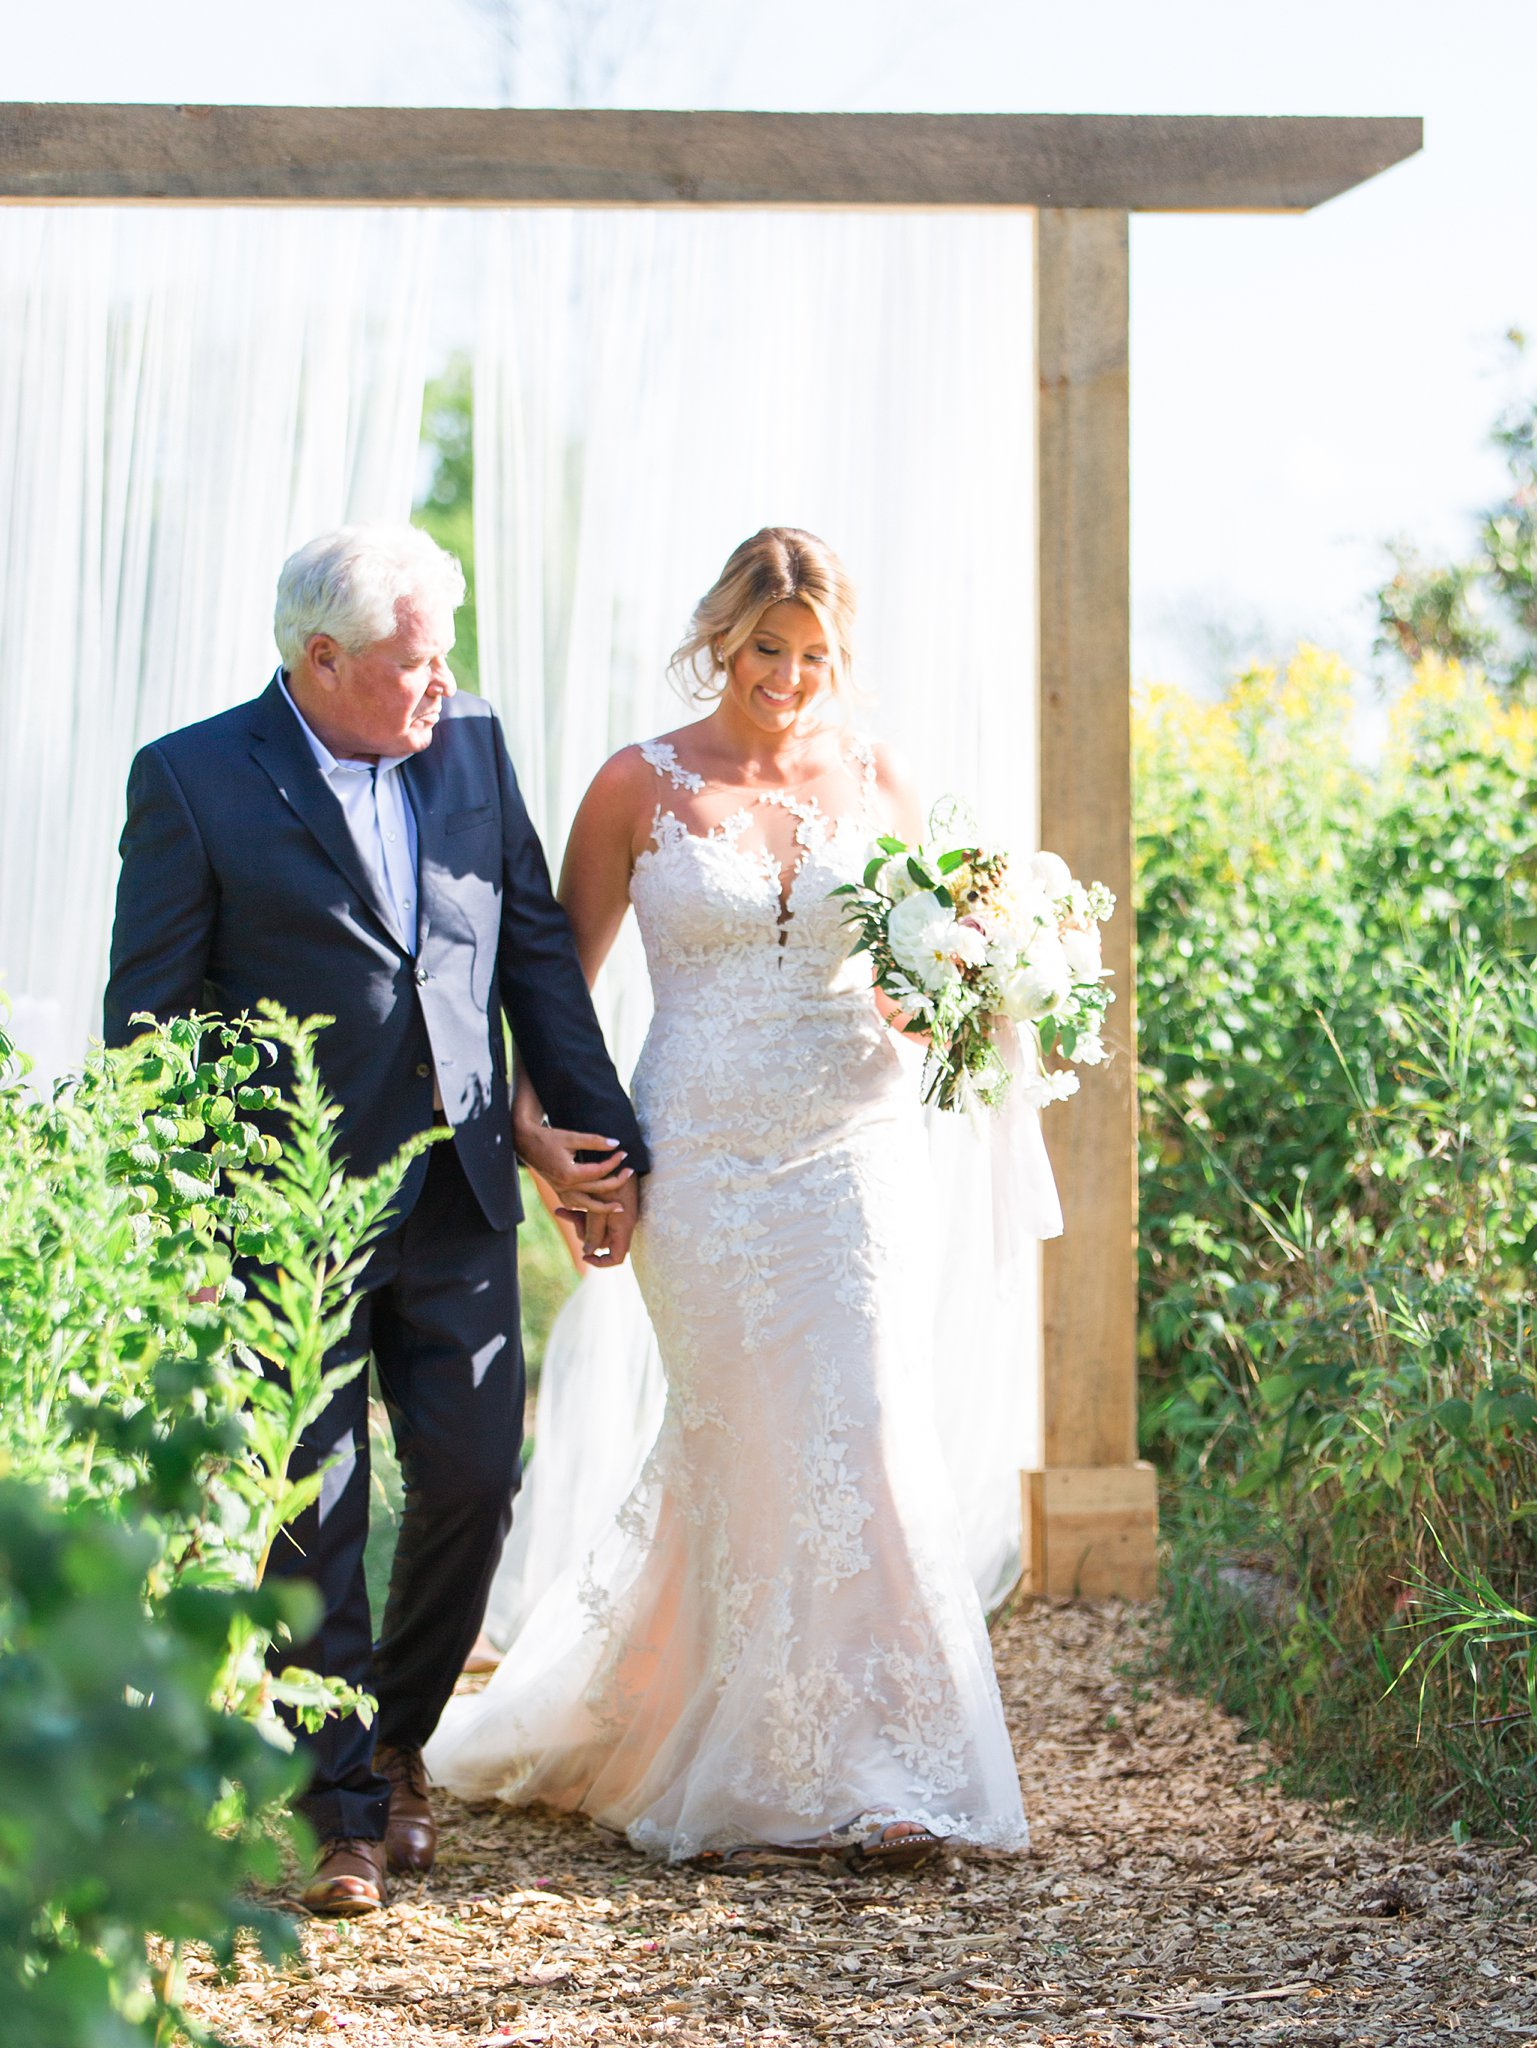 Father walks bride down aisle, sunny day, outdoor ceremony, Private Estate Wedding Photos, Amy Pinder Photography